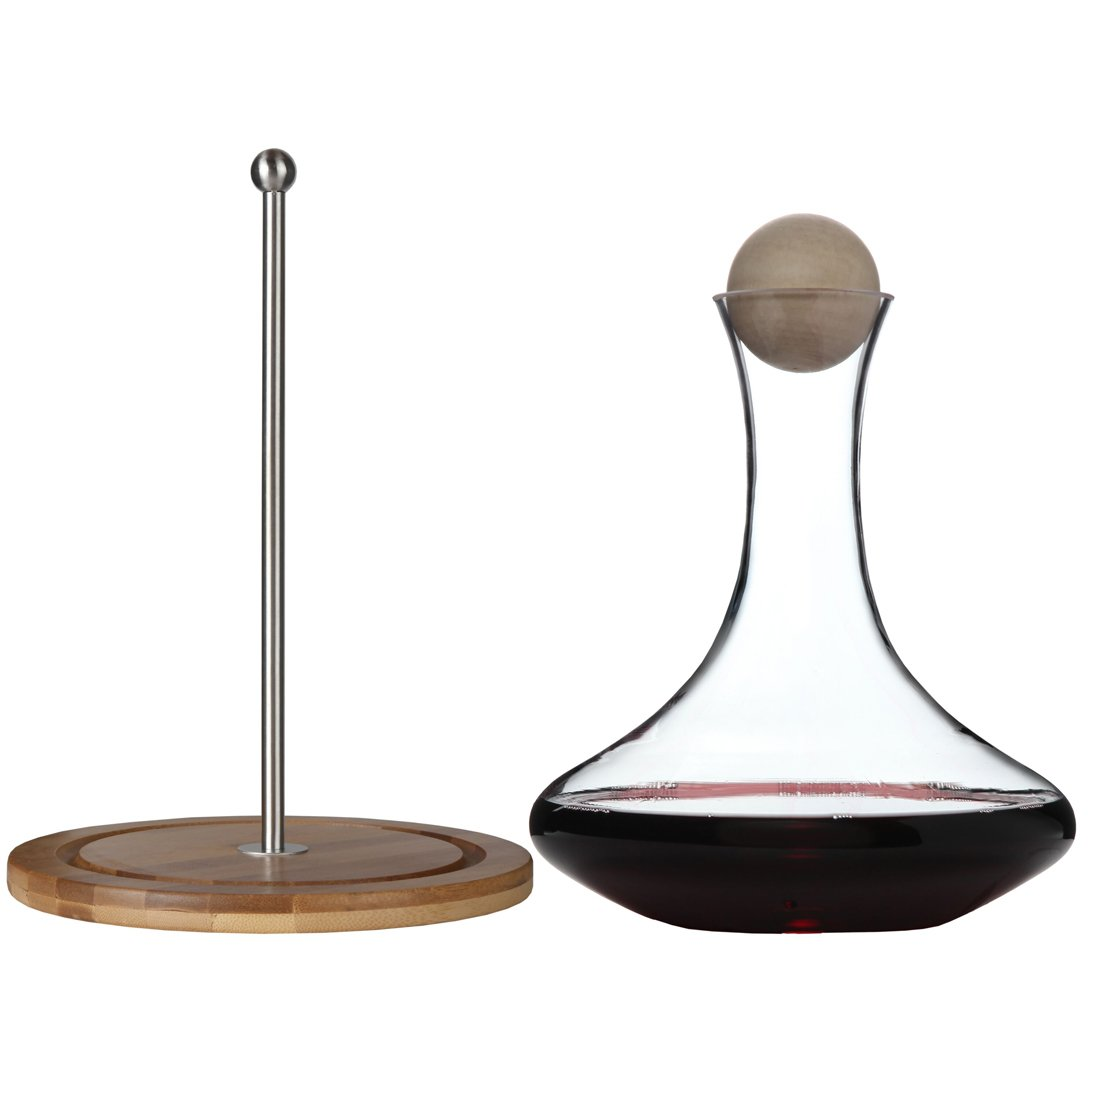 Classic Glass Wine Decanter with Wooden Ball Stopper and Decanter Dryer Stand. By Lily's Home by Lilyshome